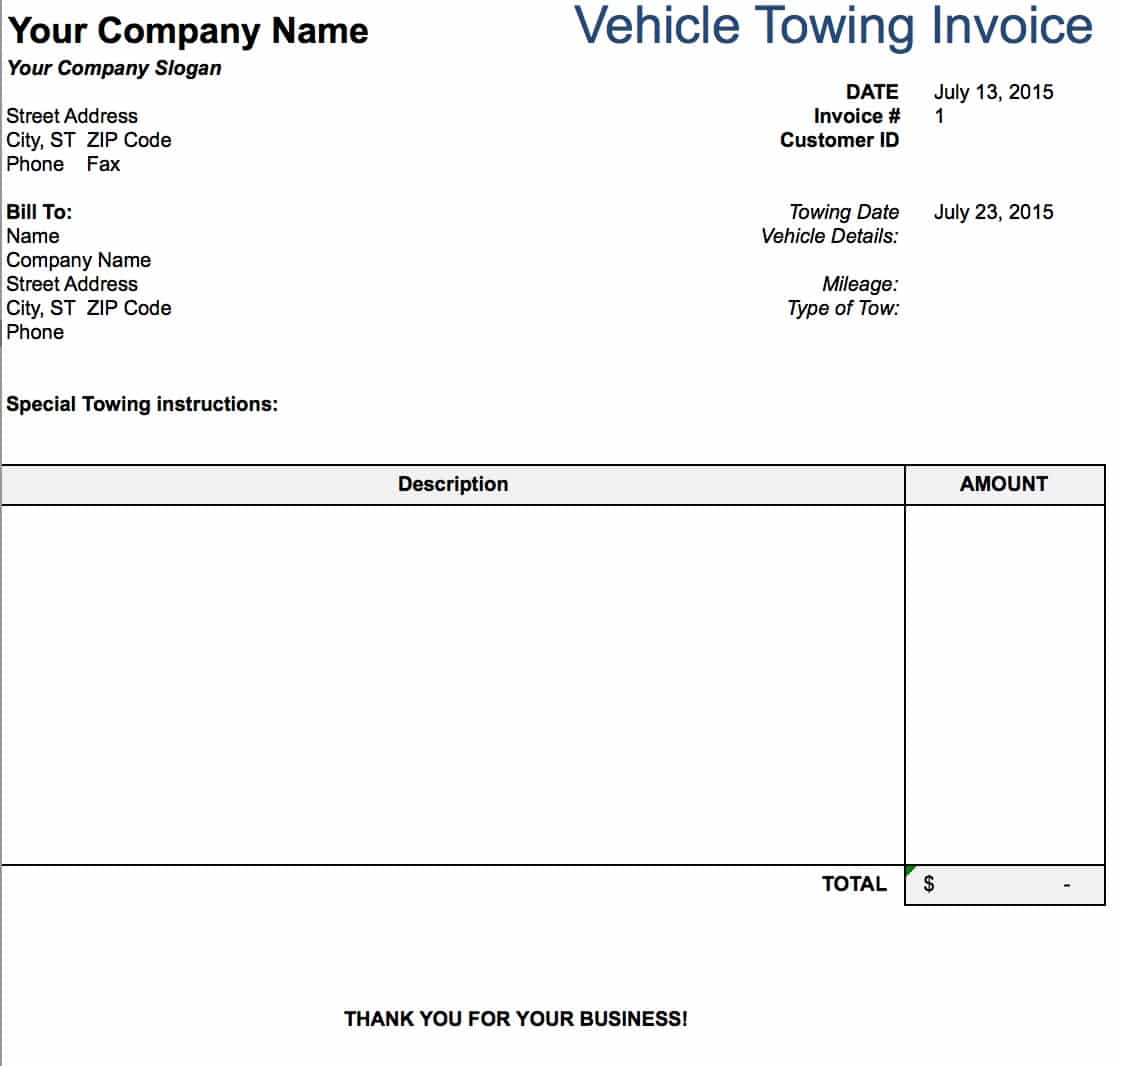 Free Tow Service Invoice Template Excel PDF Word Doc - How to create an invoice in word for service business